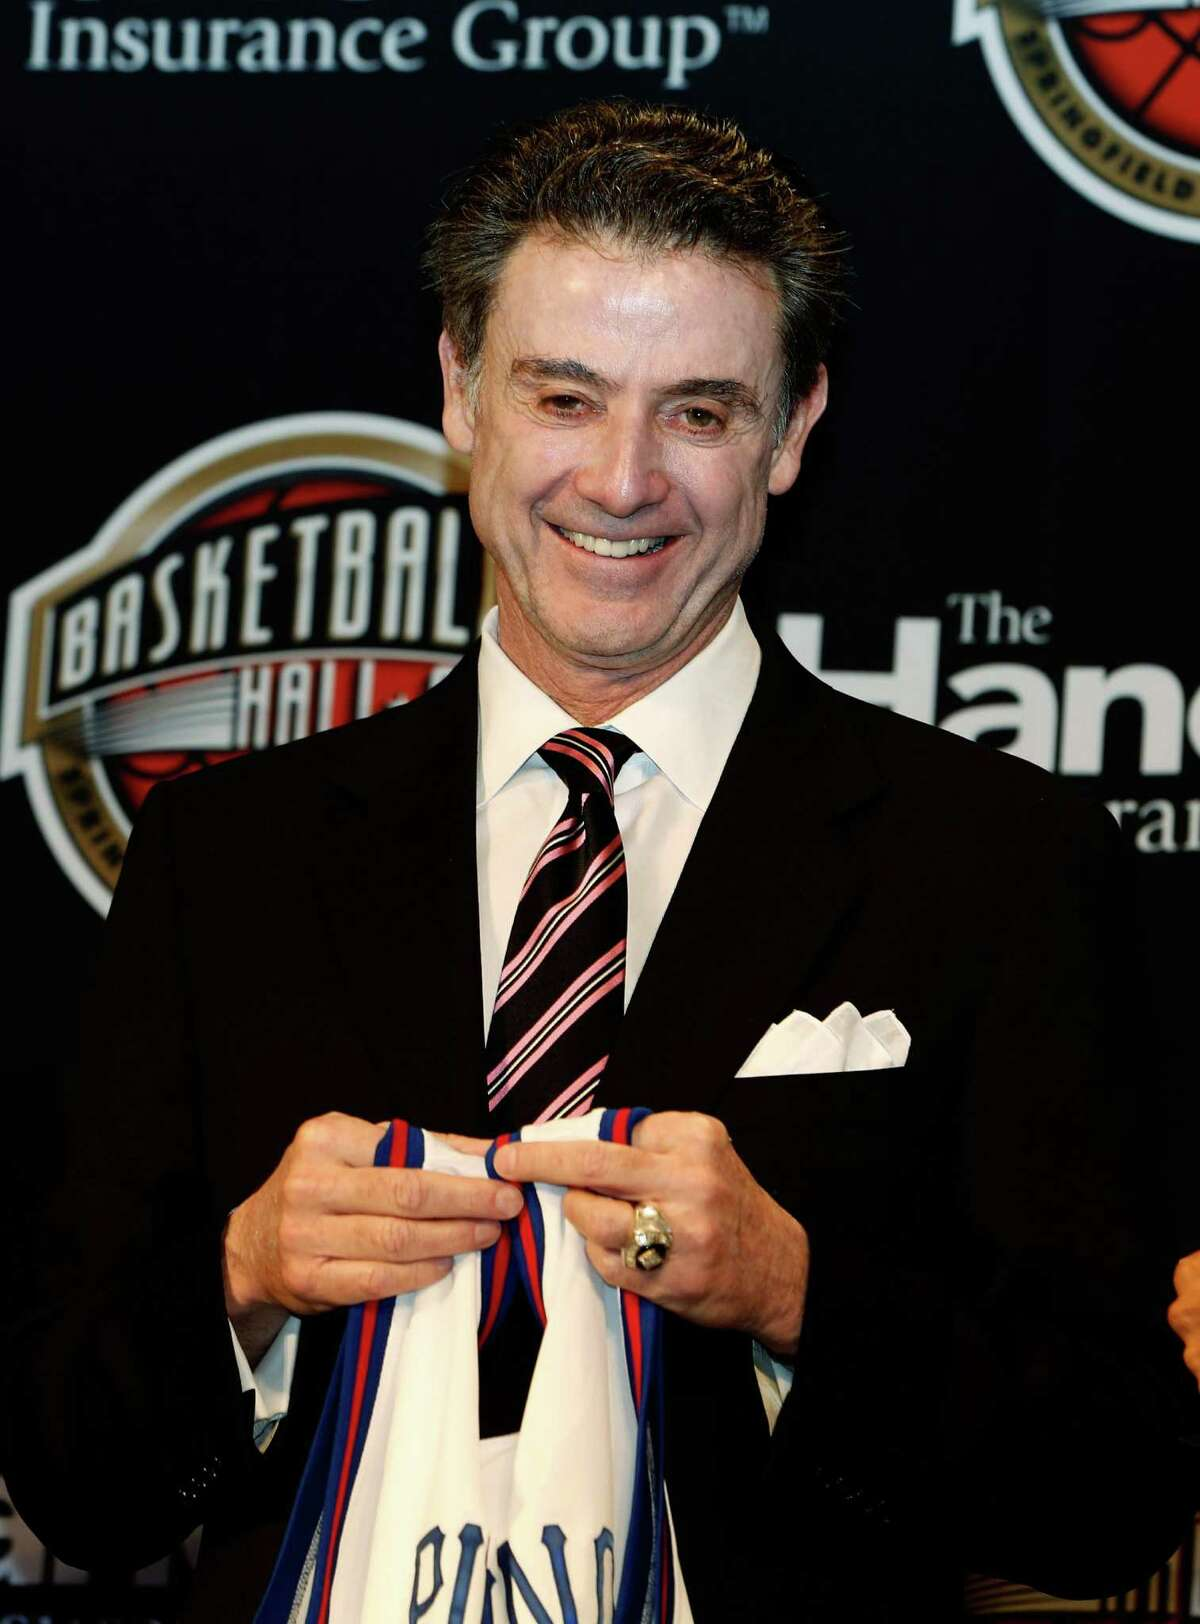 ATLANTA, GA - APRIL 08: Louisville head coach Rick Pitino stands on stage during the 2013 Naismith Memorial Basketball Hall of Fame Annoucement Ceremony at Marriott Marquis on April 8, 2013 in Atlanta, Georgia. (Photo by Mike Zarrilli/Getty Images for Naismith Basketball Hall of Fame)